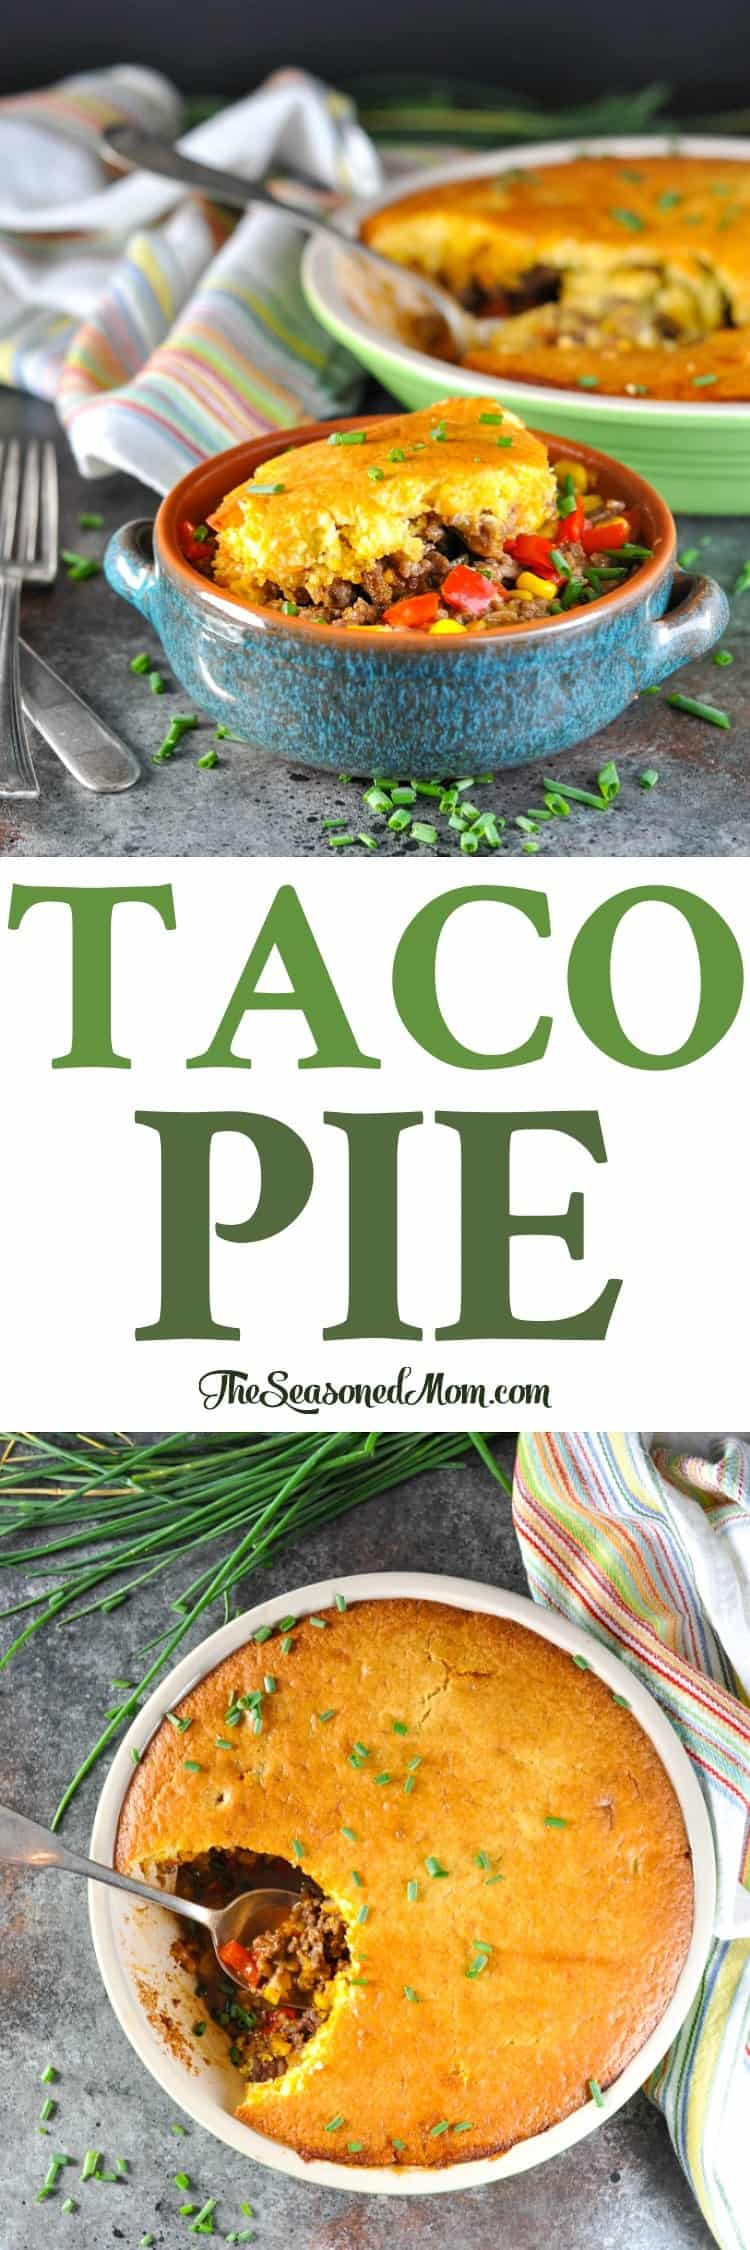 This Taco Pie is an easy ground beef recipe that's perfect for your next weeknight dinner! Dinner Ideas | Easy Dinner Recipes | Ground Beef Recipes #dinner #beef #taco #casserole #TheSeasonedMom